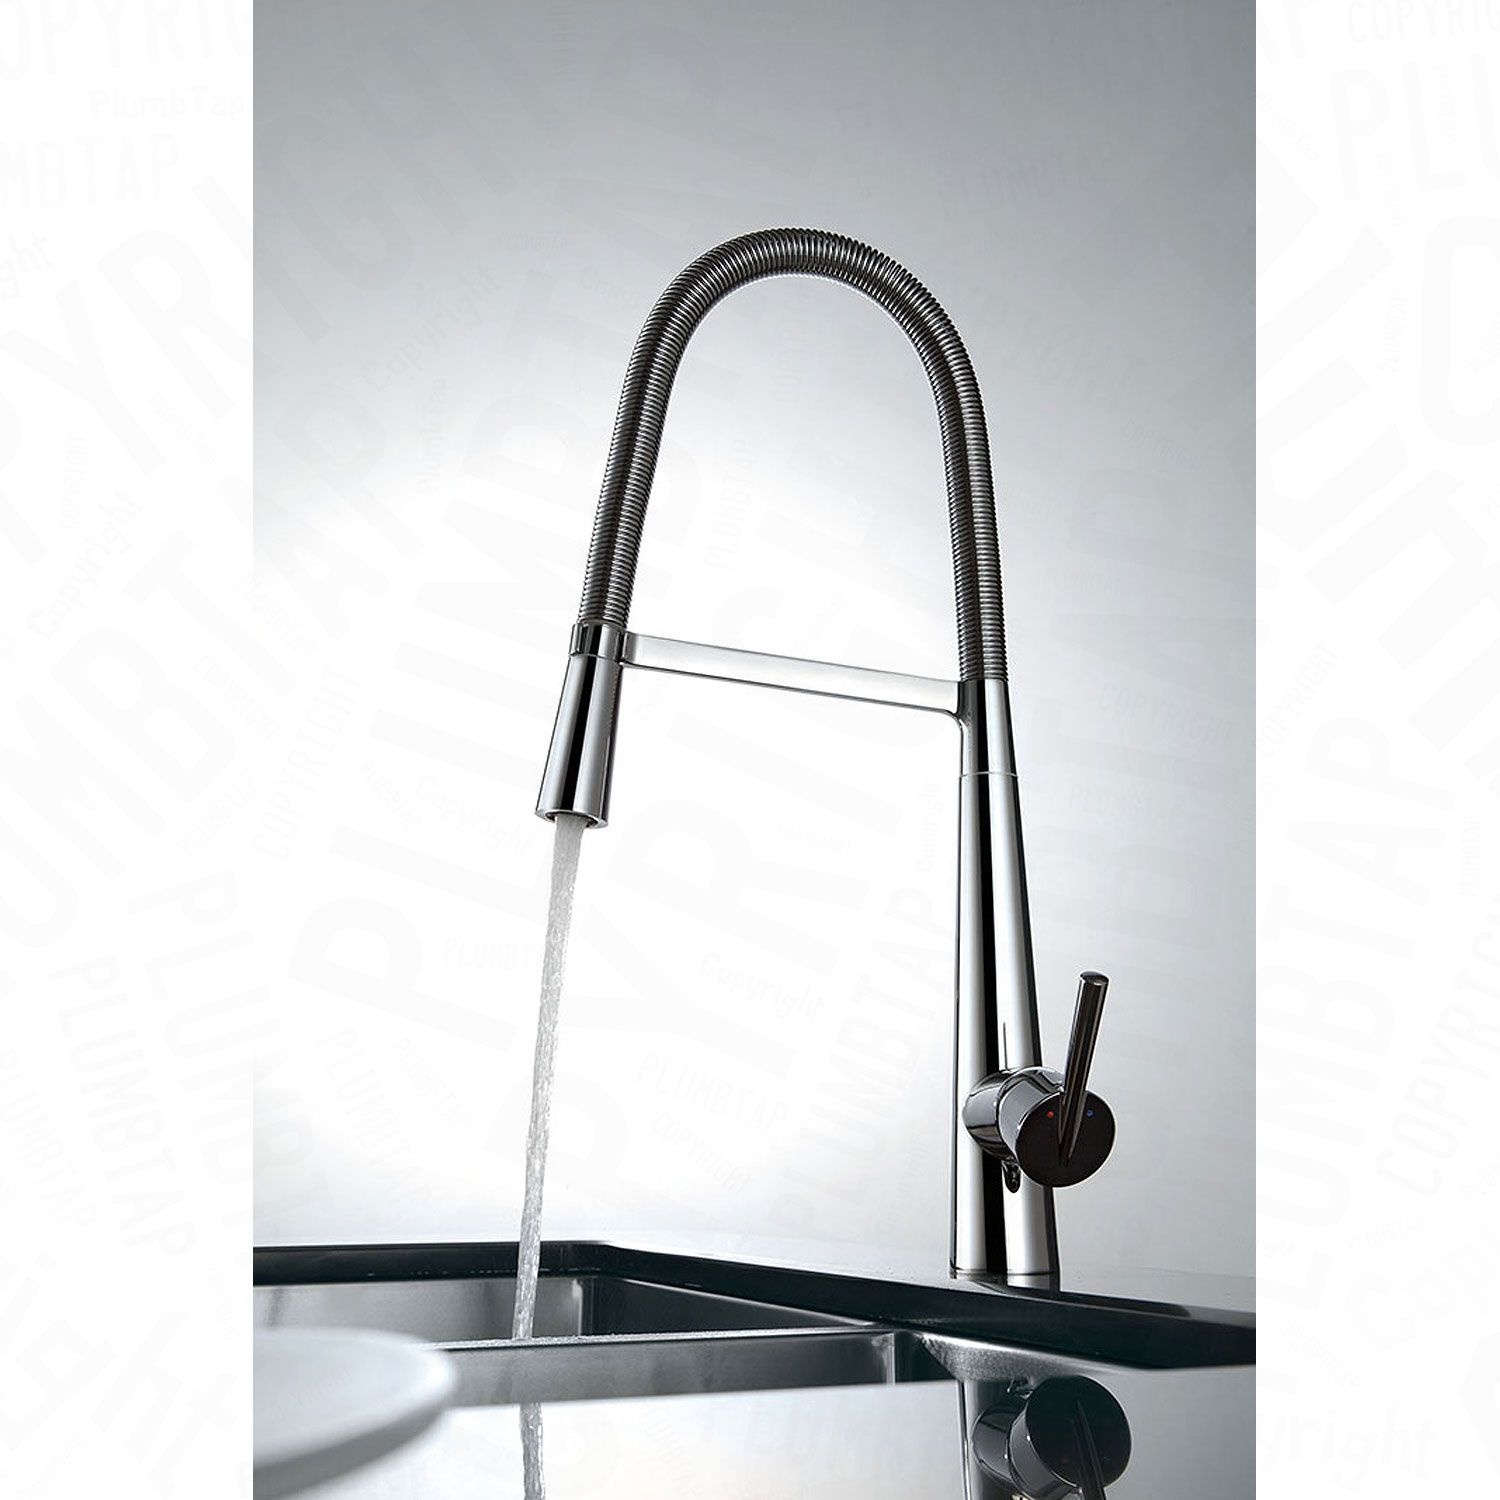 Modern Kitchen Pull Down Mixer Tap Swivel Spout 360 Stylish Chrome ...